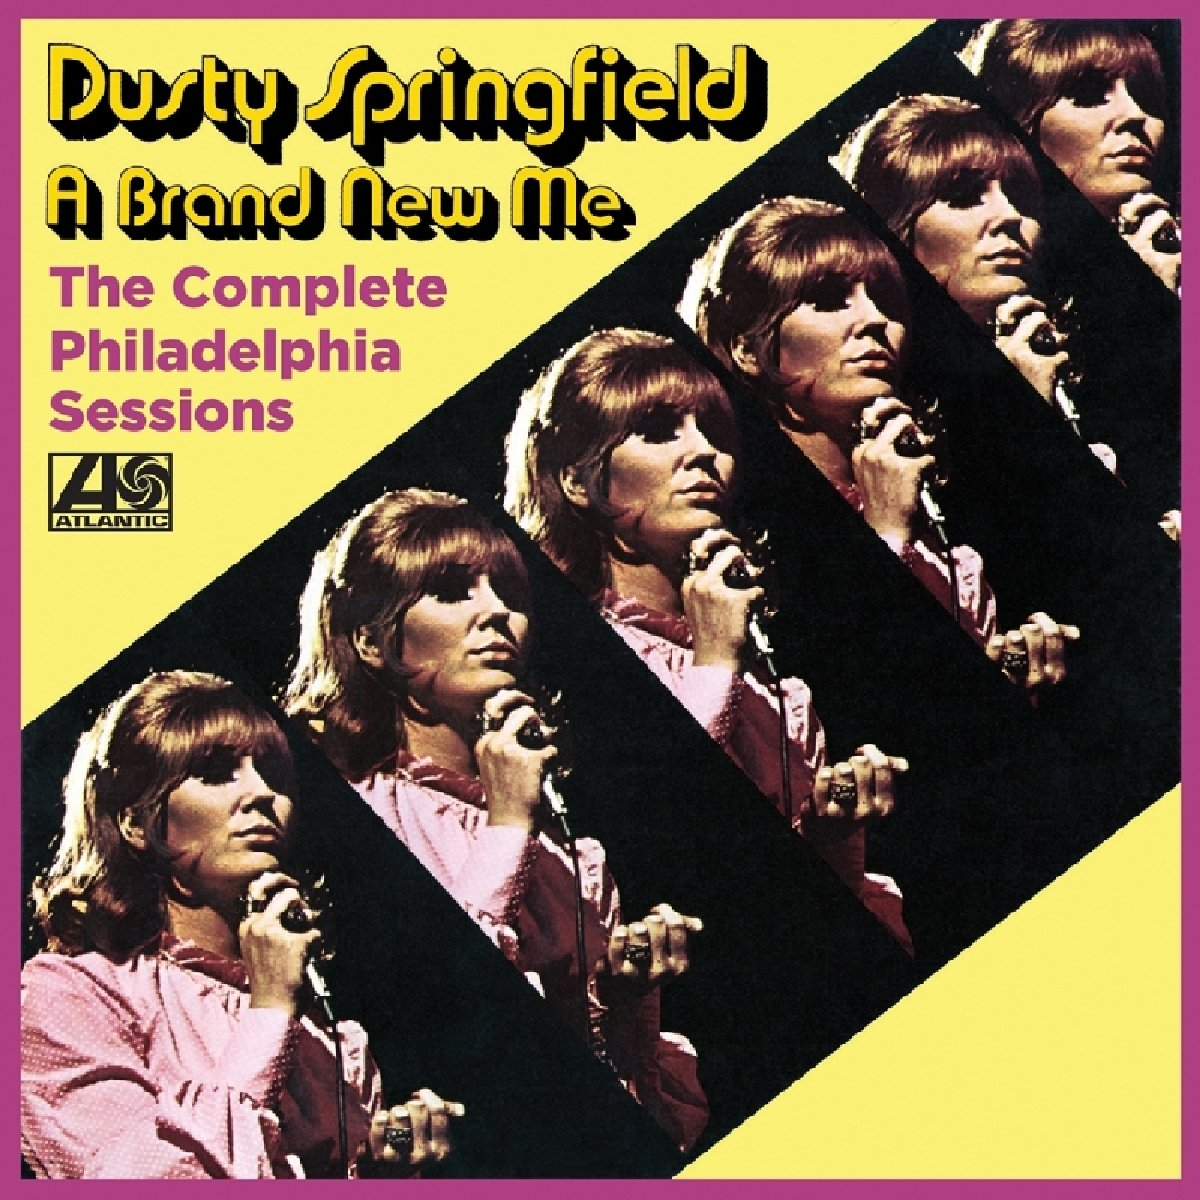 CD : Dusty Springfield - The Complete Philadelphia Sessions - A Brand New Me (Expanded Version)